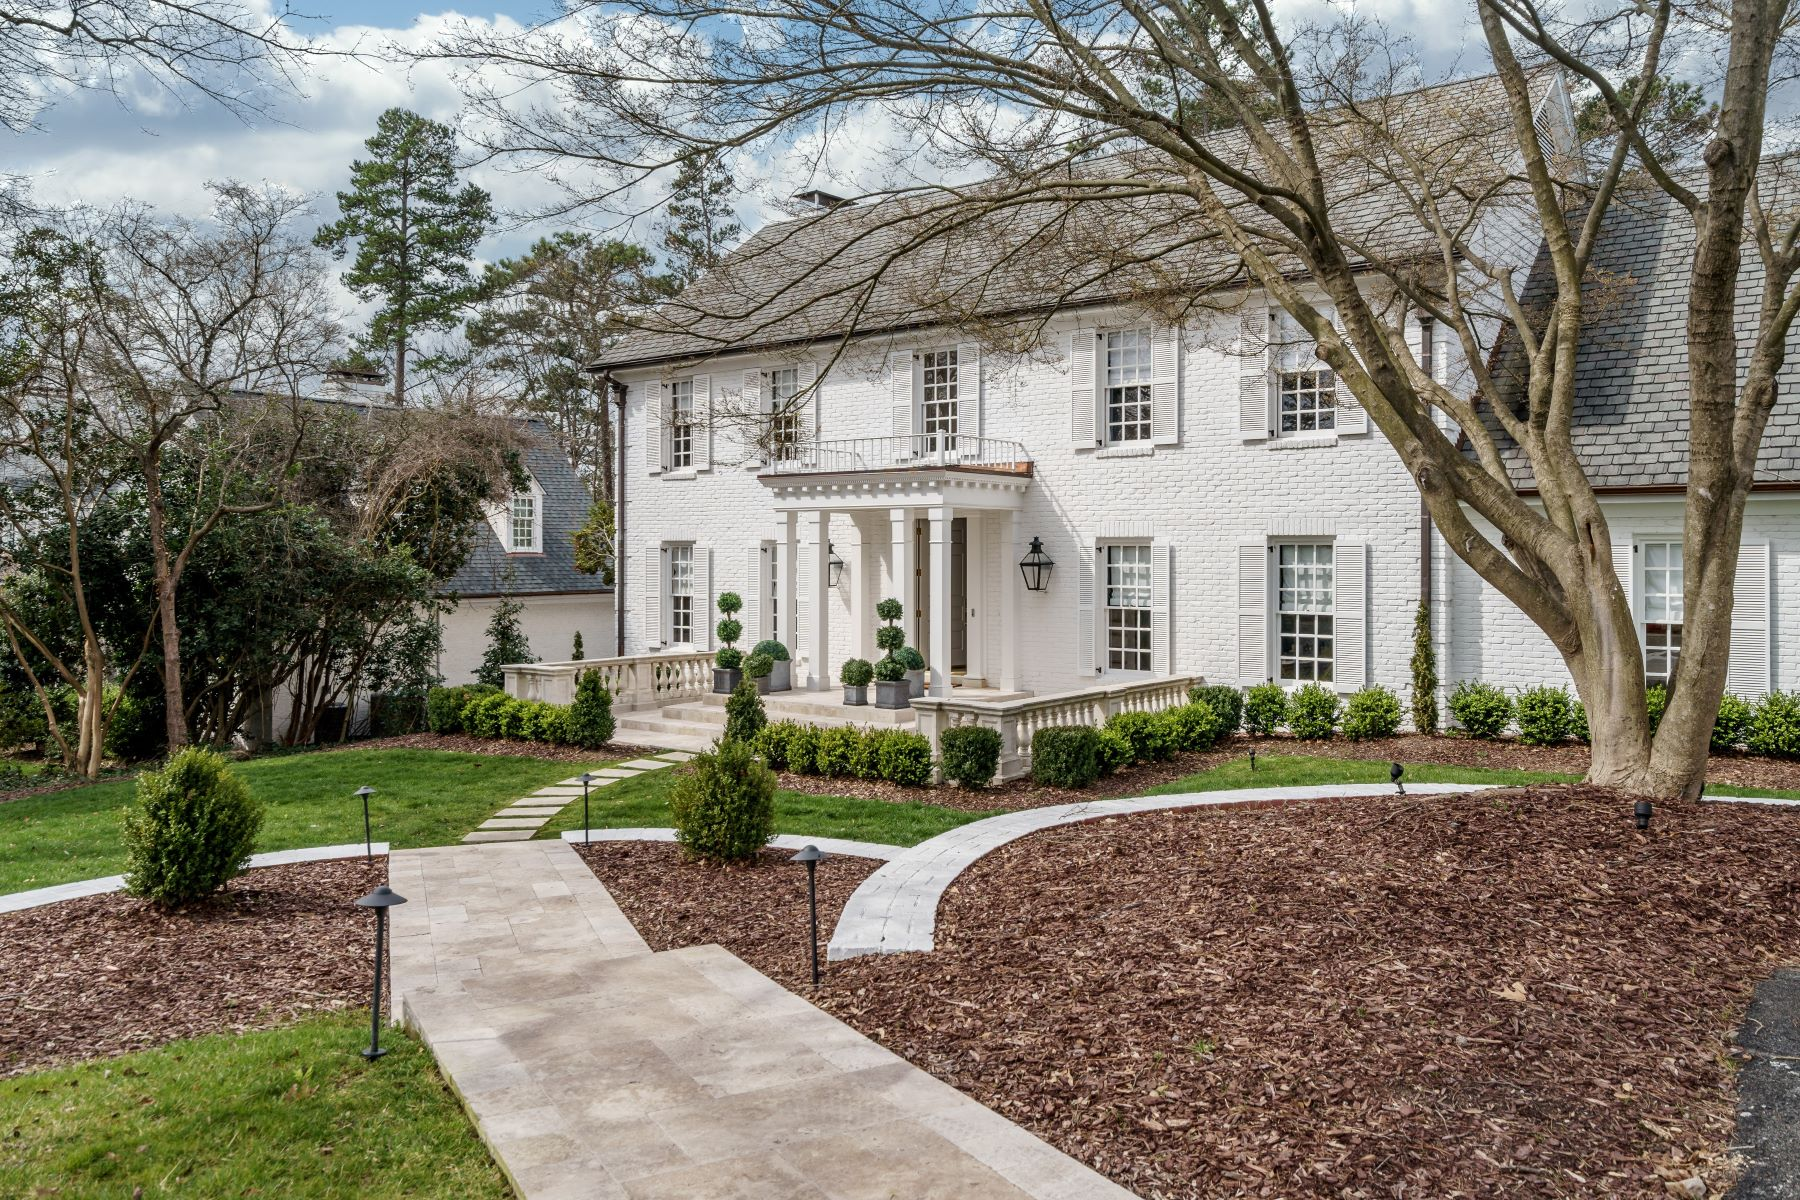 Single Family Homes for Sale at Exquisite Renovation in Prestigious Williamsborough 3708 Williamsborough Court Raleigh, North Carolina 27609 United States